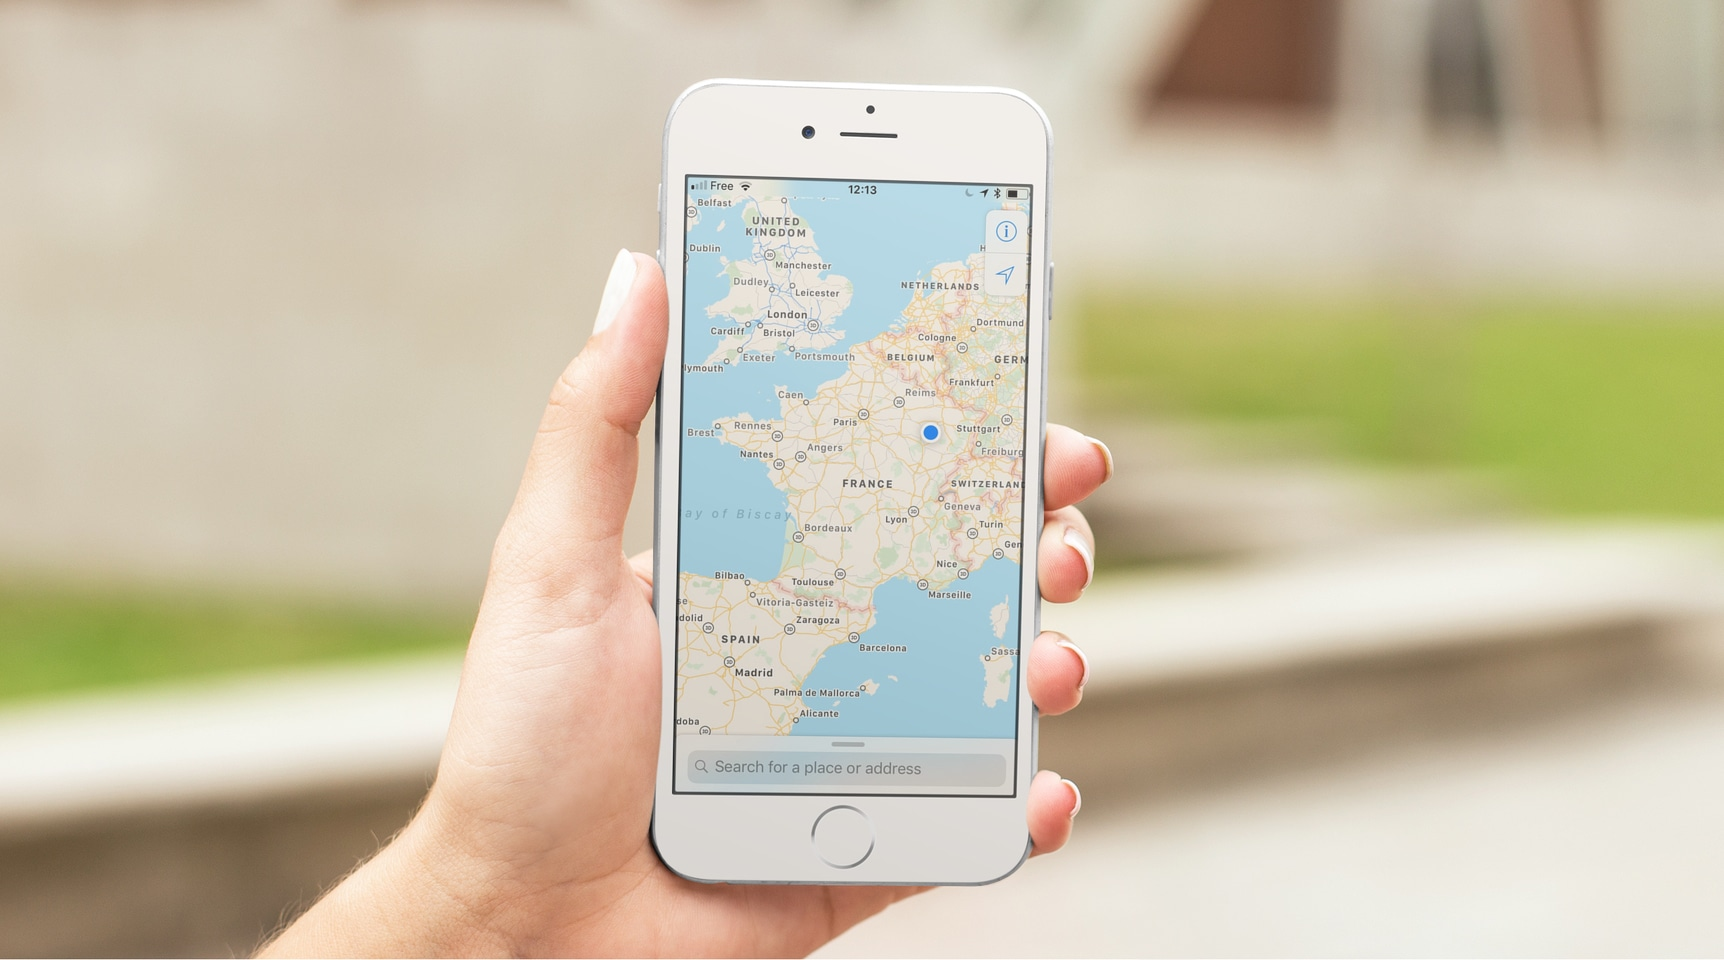 Starting a Business With a Geolocator